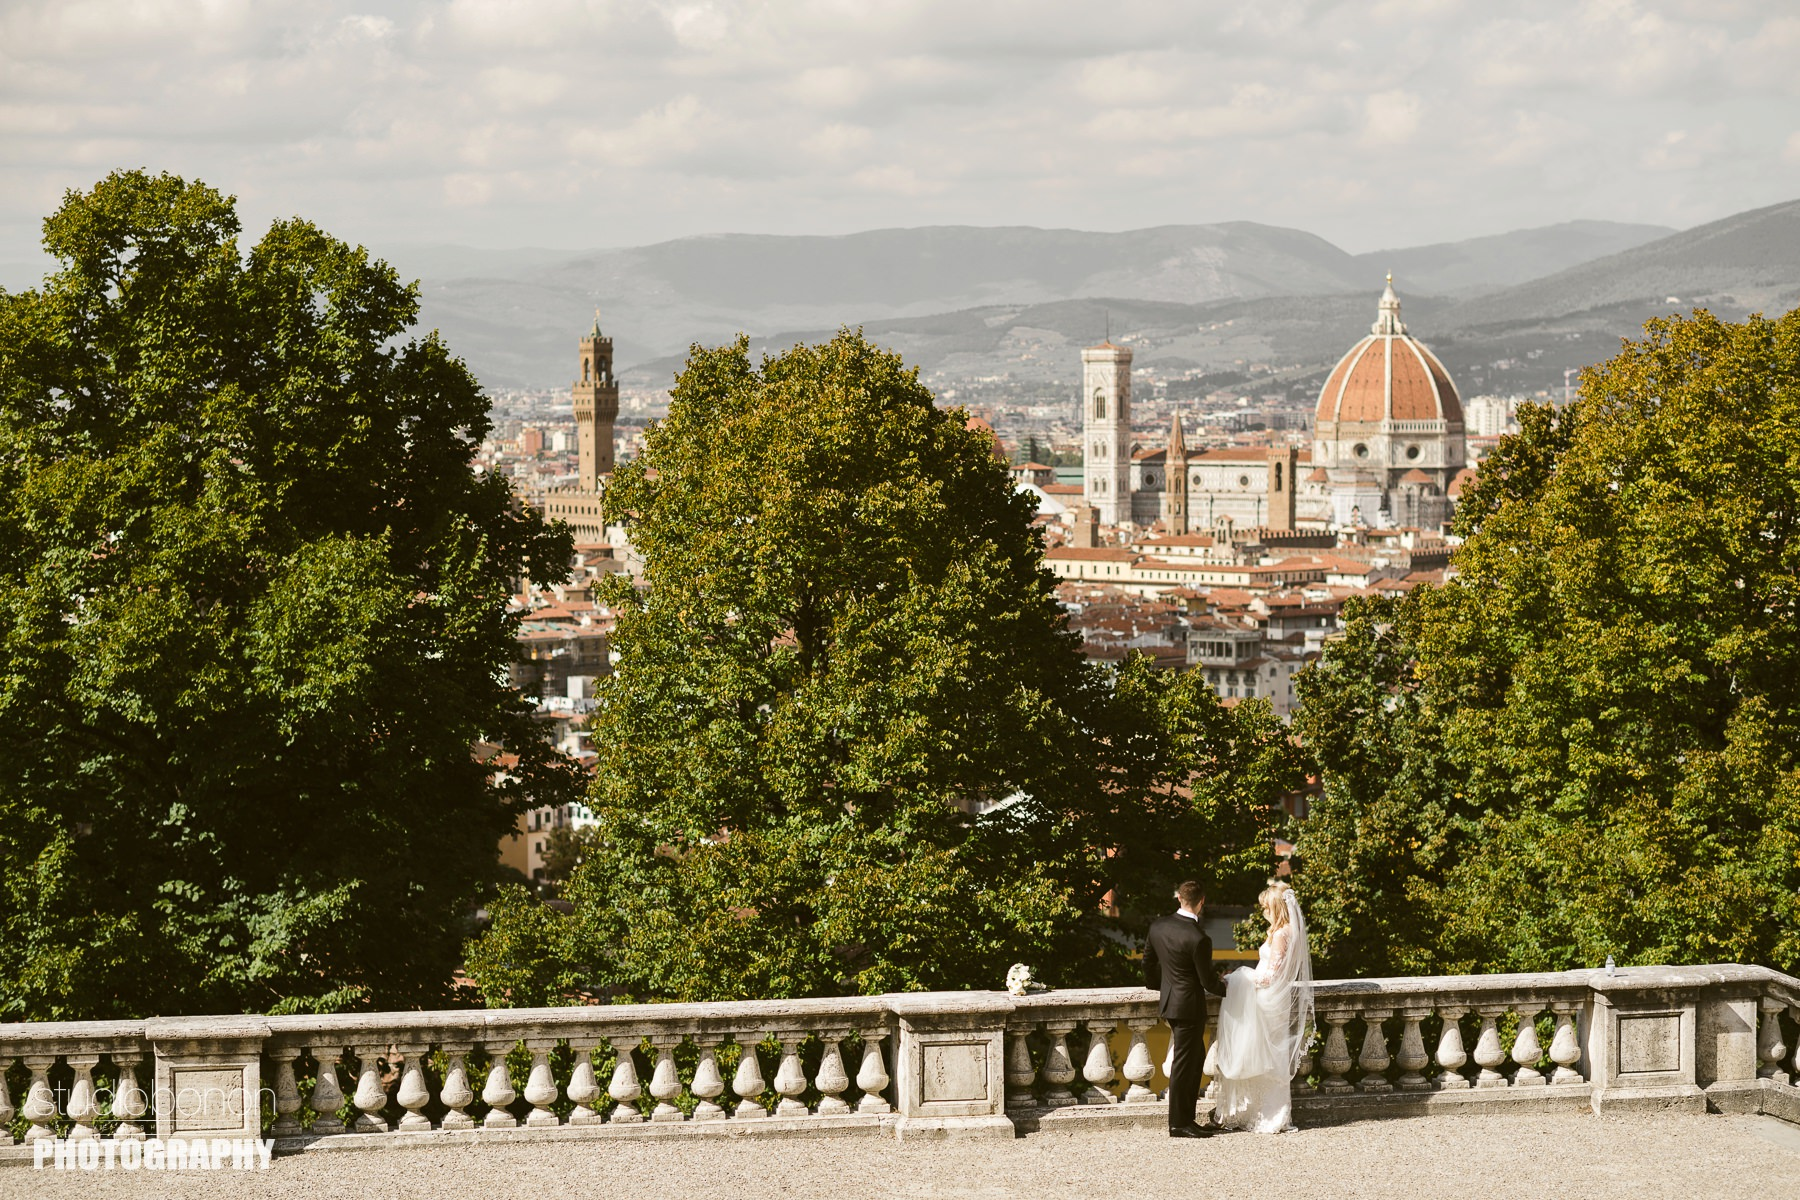 Bride and groom wedding photo at San Miniato al Monte near Piazzale Michelangelo